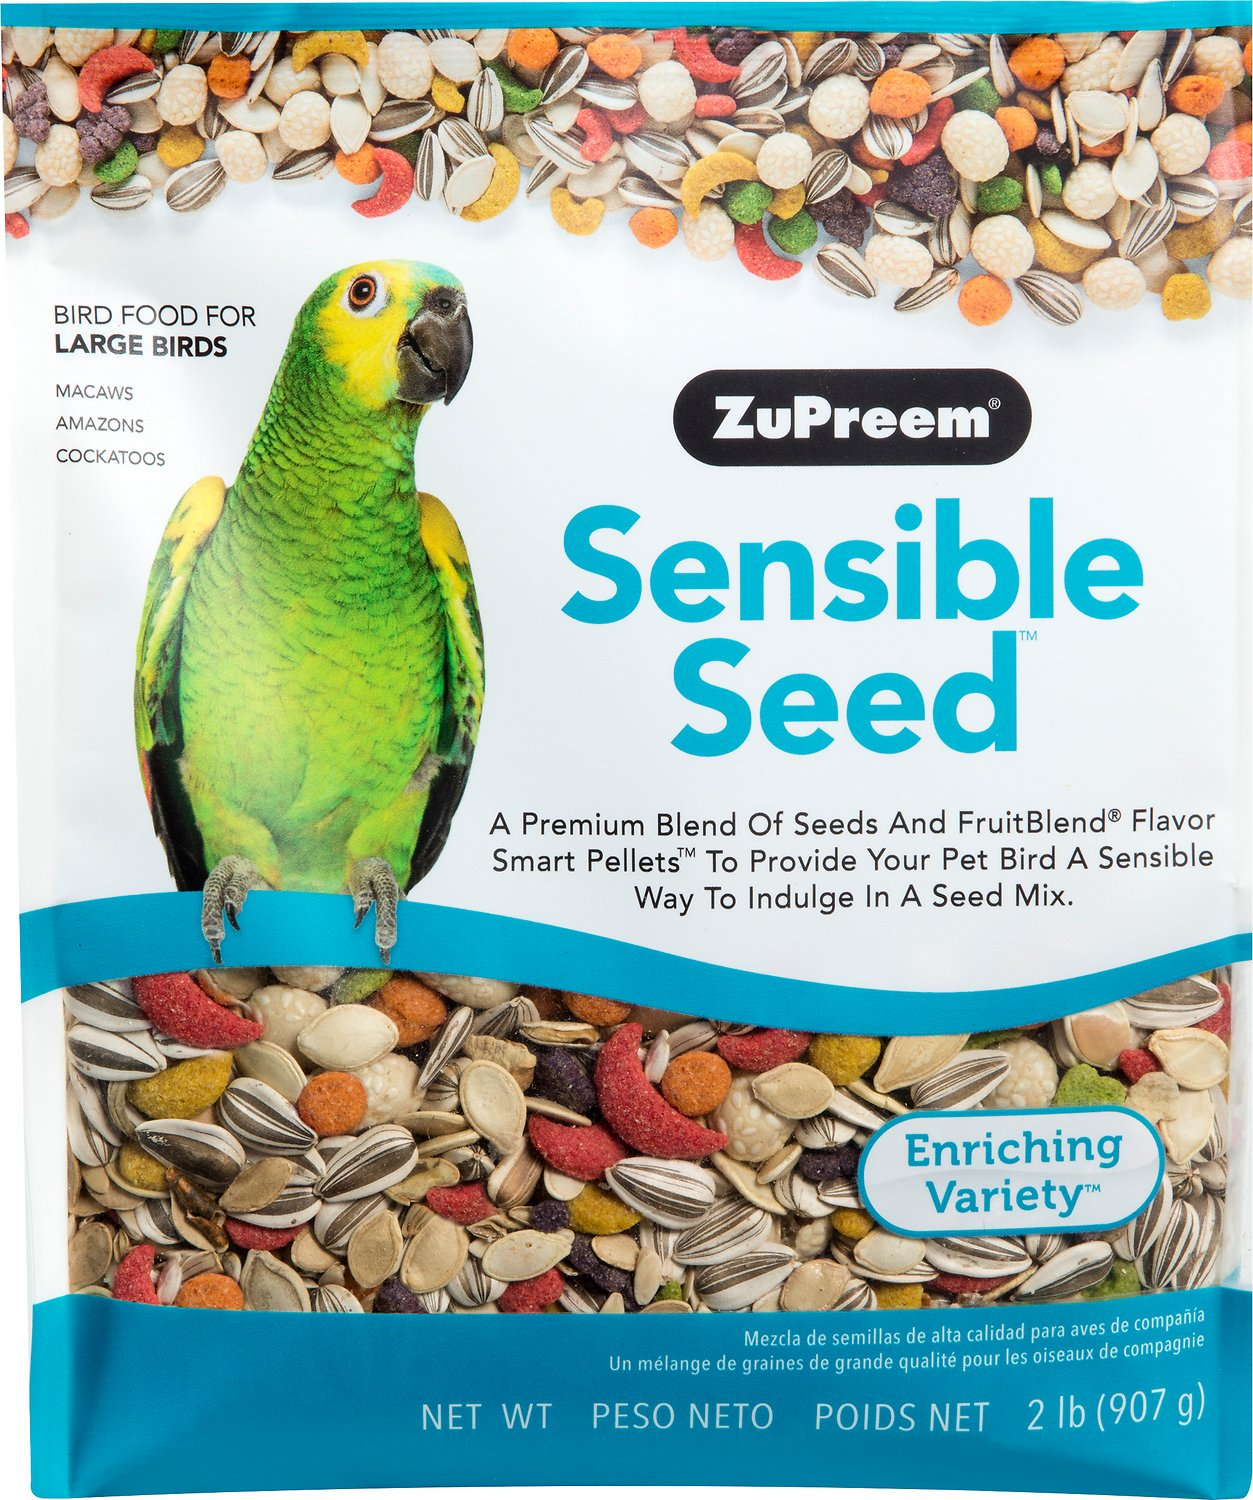 907g Sensible Seed Bird Food for Parrots /& Conures by ZuPreem 2 lbs